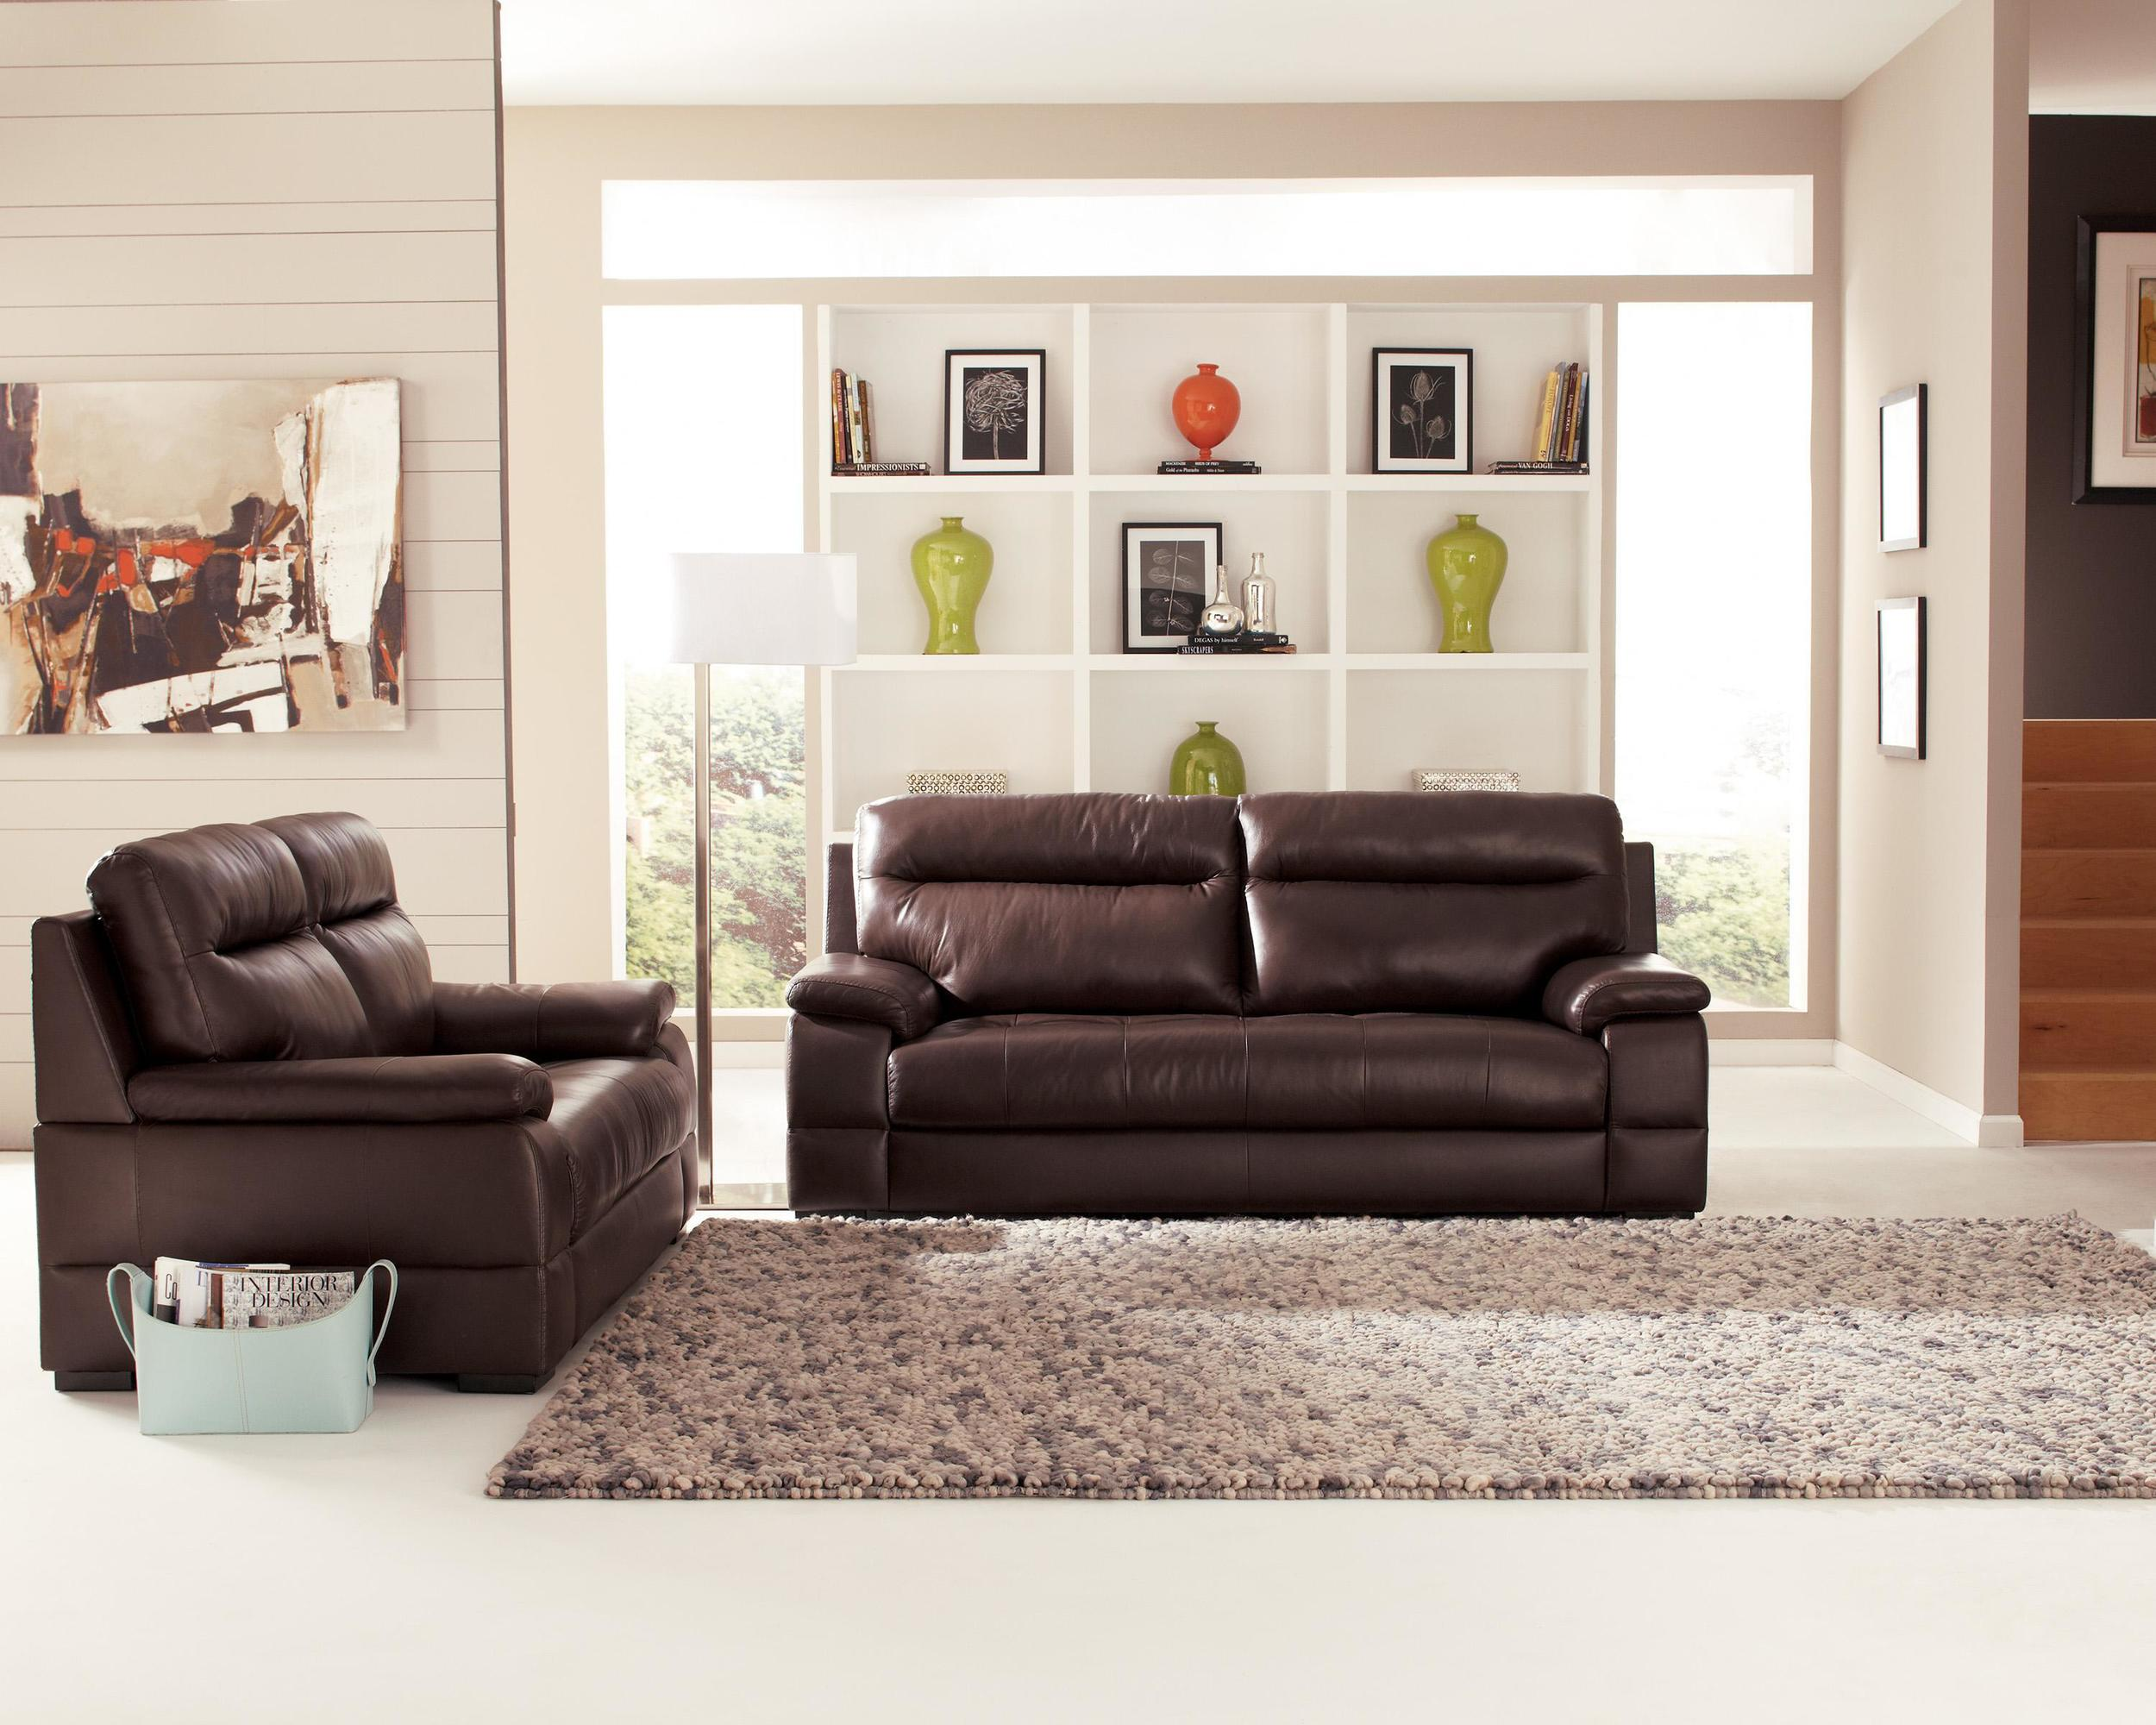 Ashley-Furniture-Luke-Living-Room-Furniture-Set.jpg